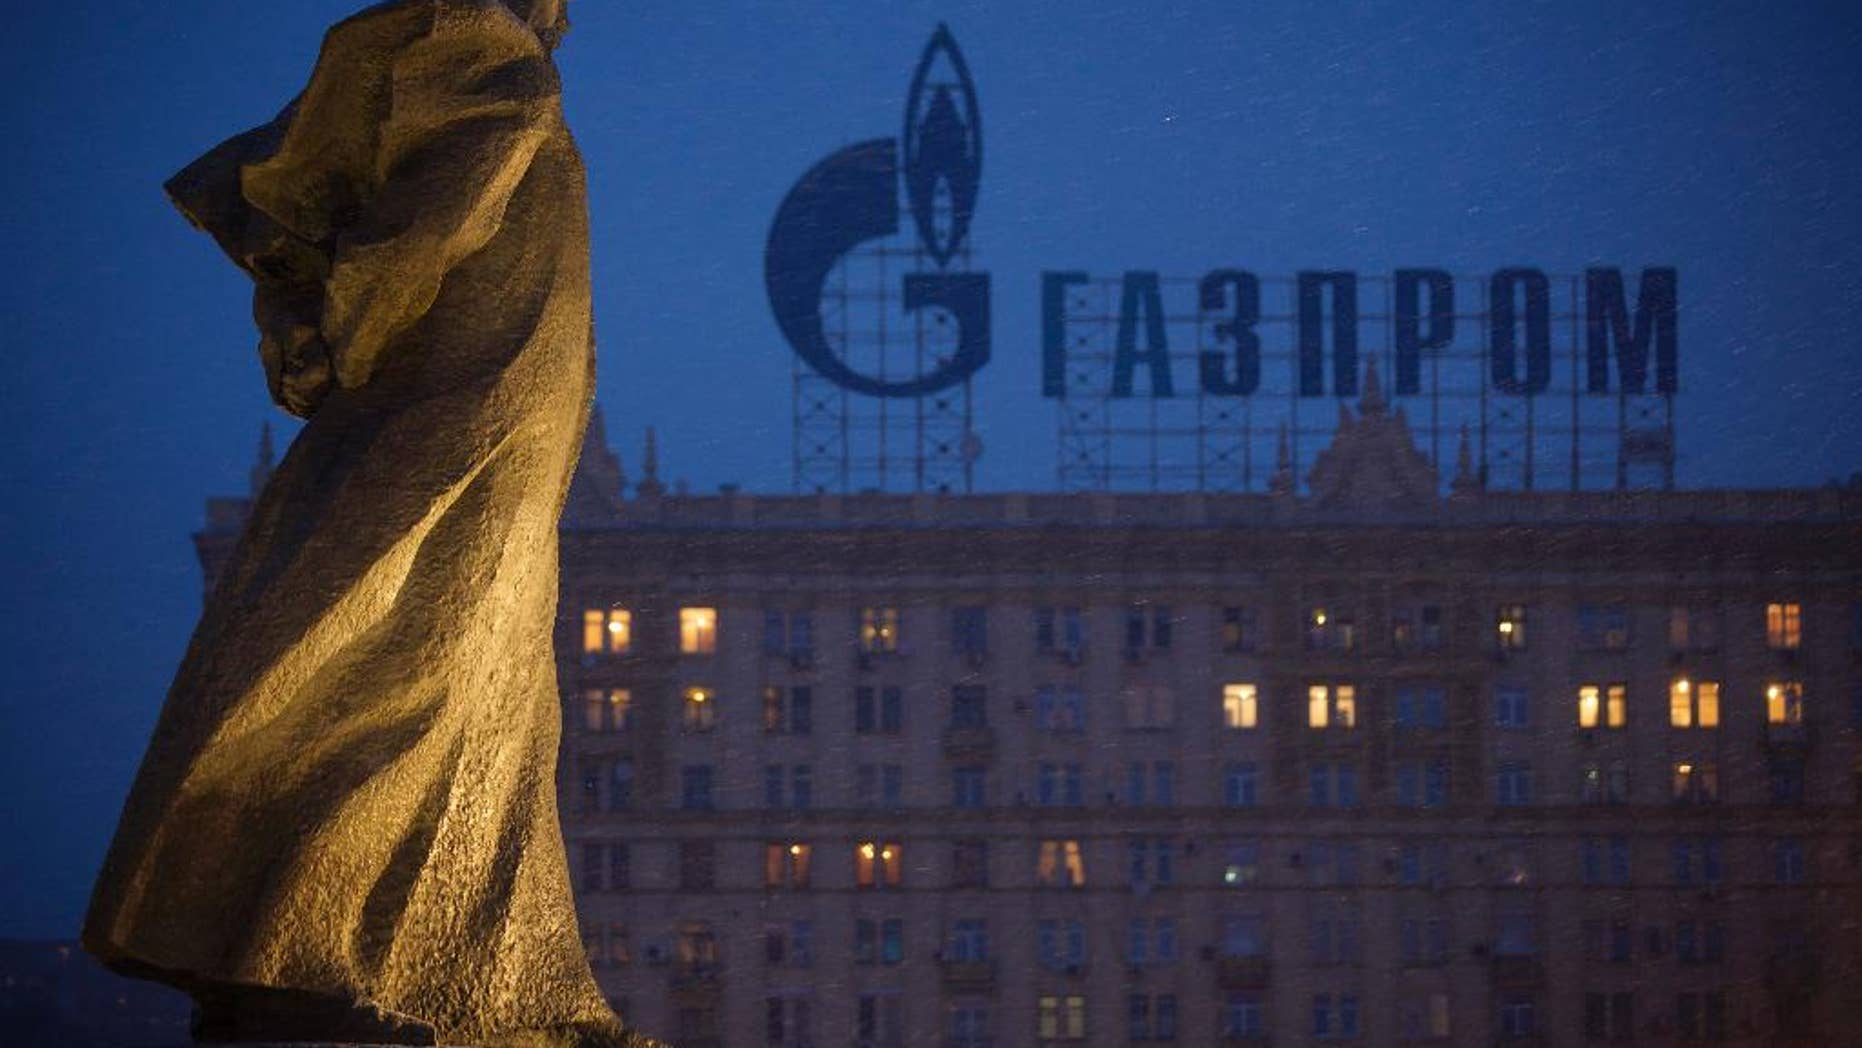 """FILE - In this Tuesday, March 4, 2014 file photo, a monument to Ukrainian poet and writer Taras Shevchenko is silhouetted against an apartment building with a sign advertising Russia's natural gas giant Gazprom, in Moscow, Russia. Poland has resumed deliveries of gas to Ukraine that it had halted after its own supplies from Russia dropped this week, the state pipeline operator said Friday, Sept. 12, 2014. The statement by Gaz-System S.A. suggests gas flows from Russian supplier Gazprom are once again meeting Poland's daily demand. State gas company, PGNiG, said that on Thursday it still registered some deficit compared to the ordered amount, but that the shortfall was lower than on Wednesday, when supplies were 45 percent short of demand. The spat between Poland and Russia came amid concerns that Moscow is ready to use its energy exports as a political weapon over the crisis in Ukraine.""""We do not treat the situation as a crisis,"""" Zawisza said. """"It is just one incident."""" (AP Photo/Alexander Zemlianichenko, file)"""